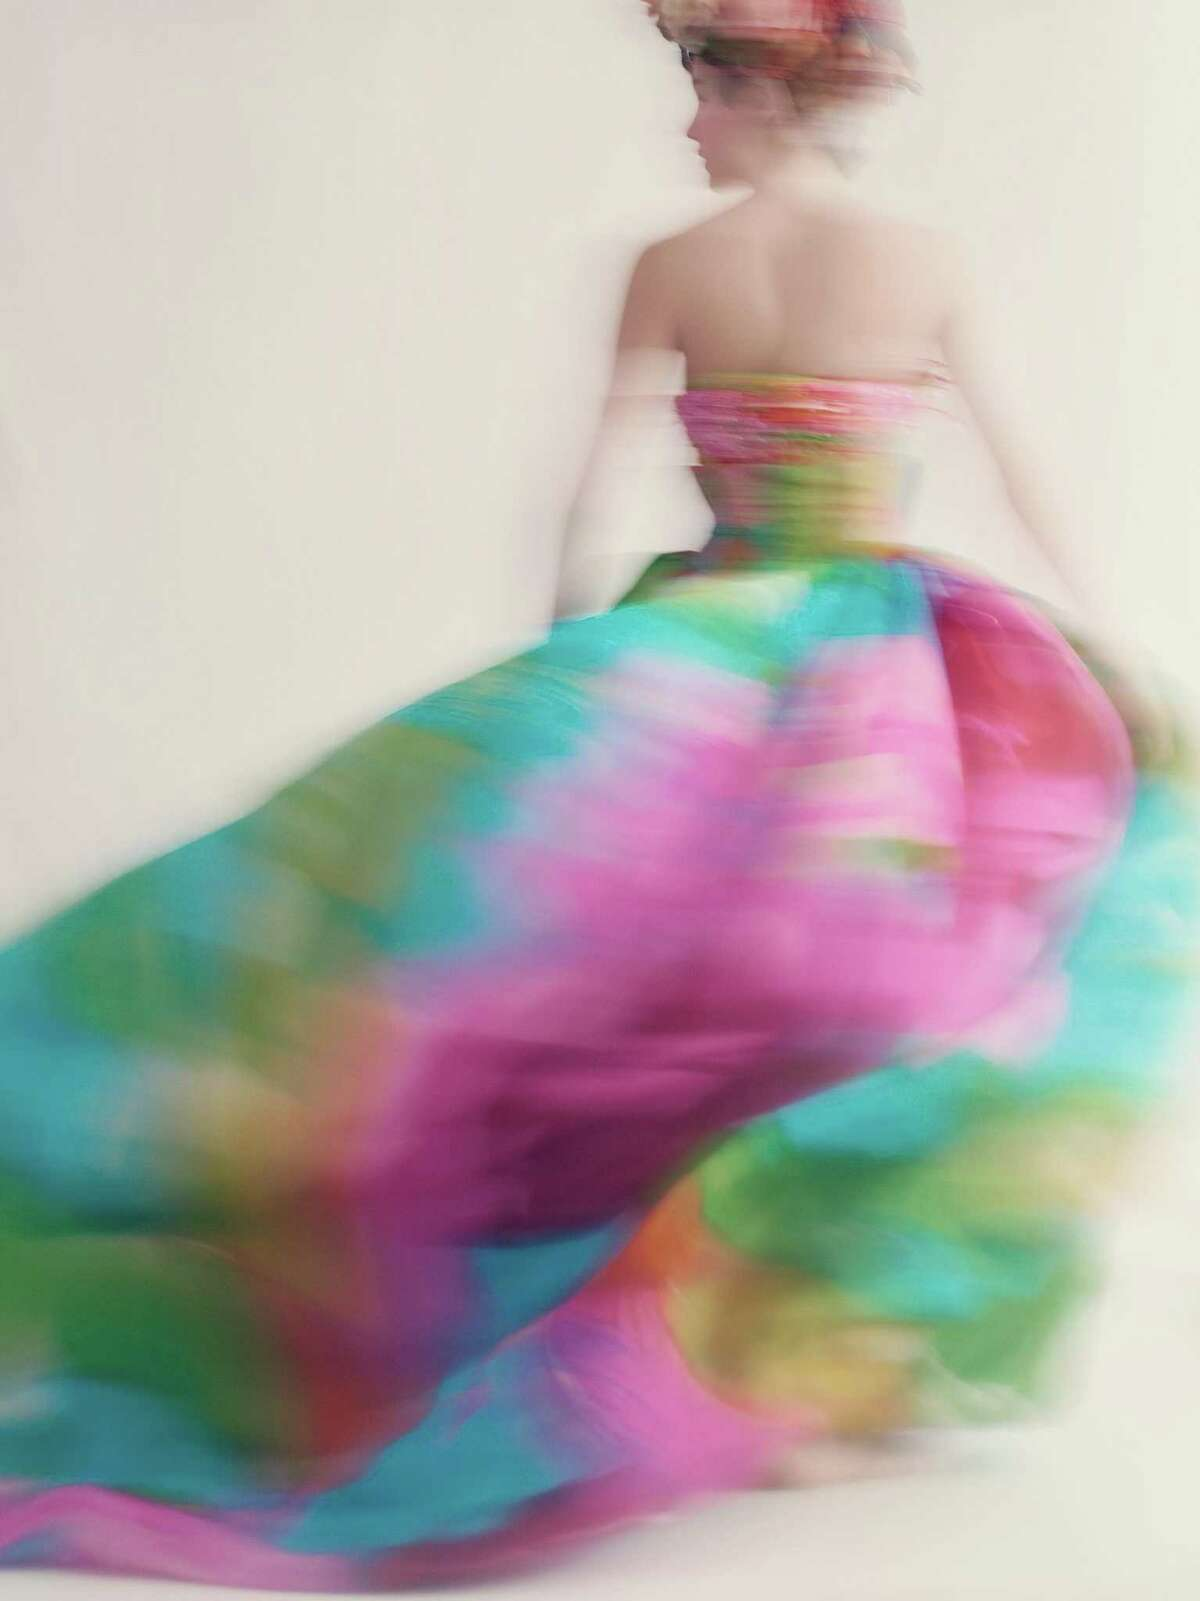 """Gianfranco Ferré's """"Robe Hellébore, Dior Collection Haute Couture, Spring 1995"""" is among the fashions on display at the Dallas Museum of Art this summer in the exhibition """"Dior: From Paris to the World."""""""